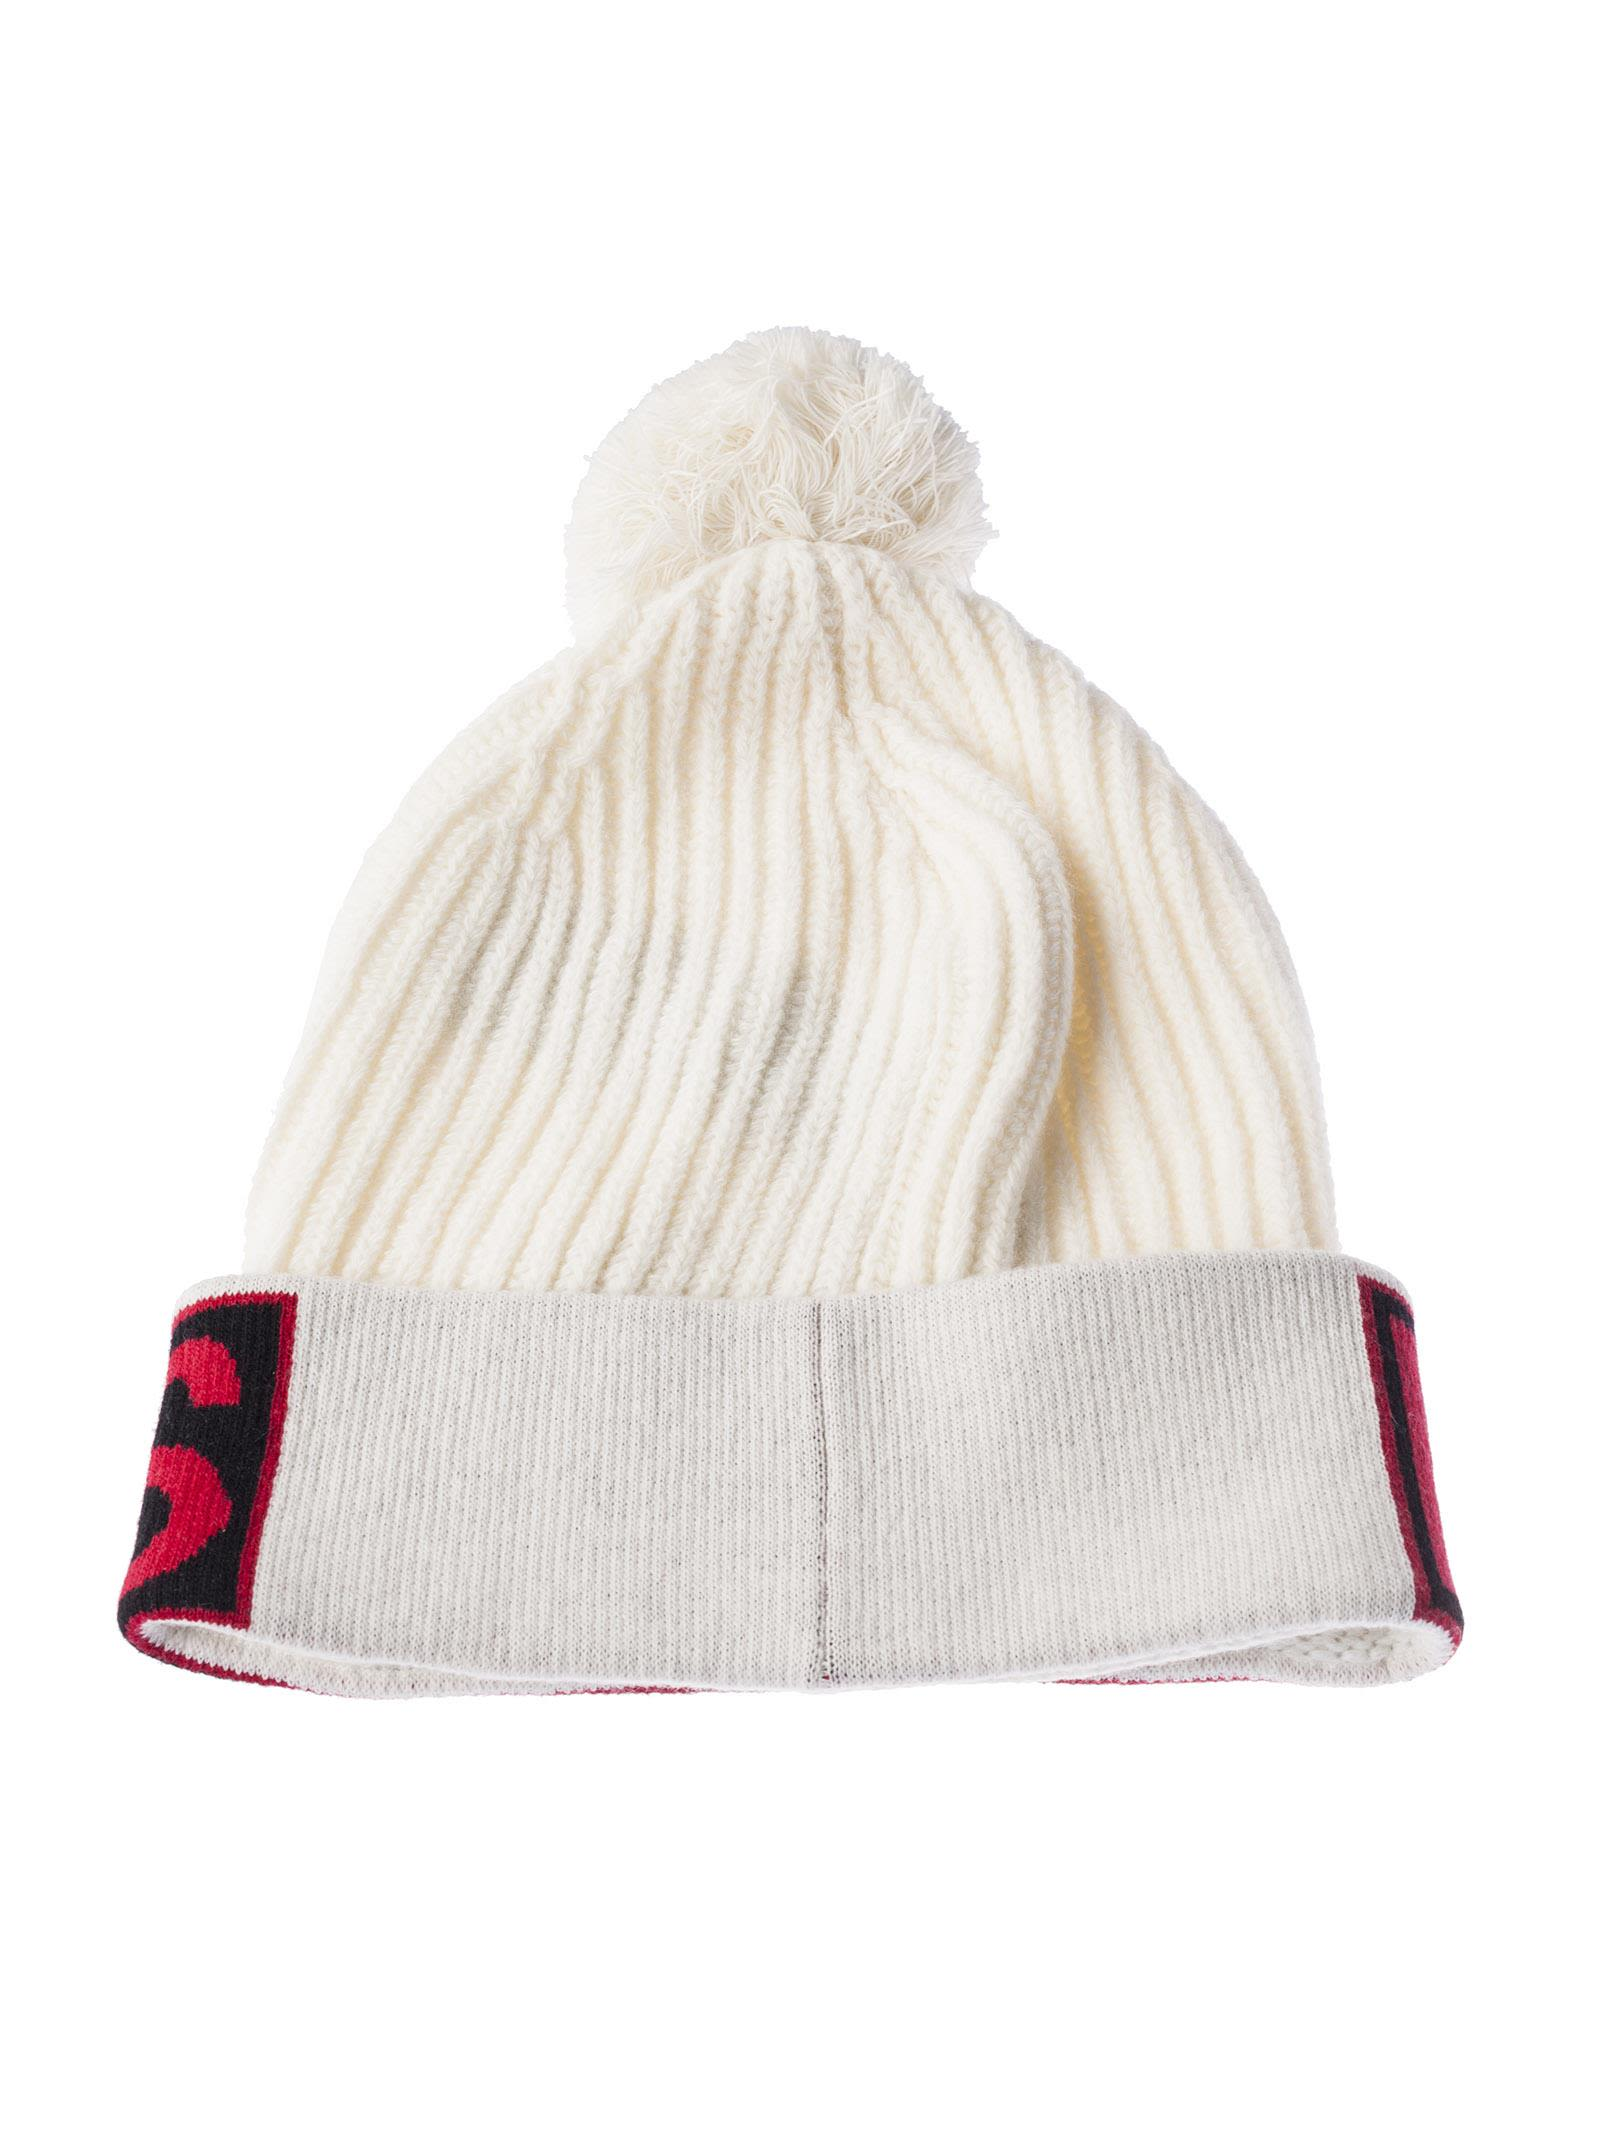 Princess bobble hat - White Dolce & Gabbana Sb56I7KE